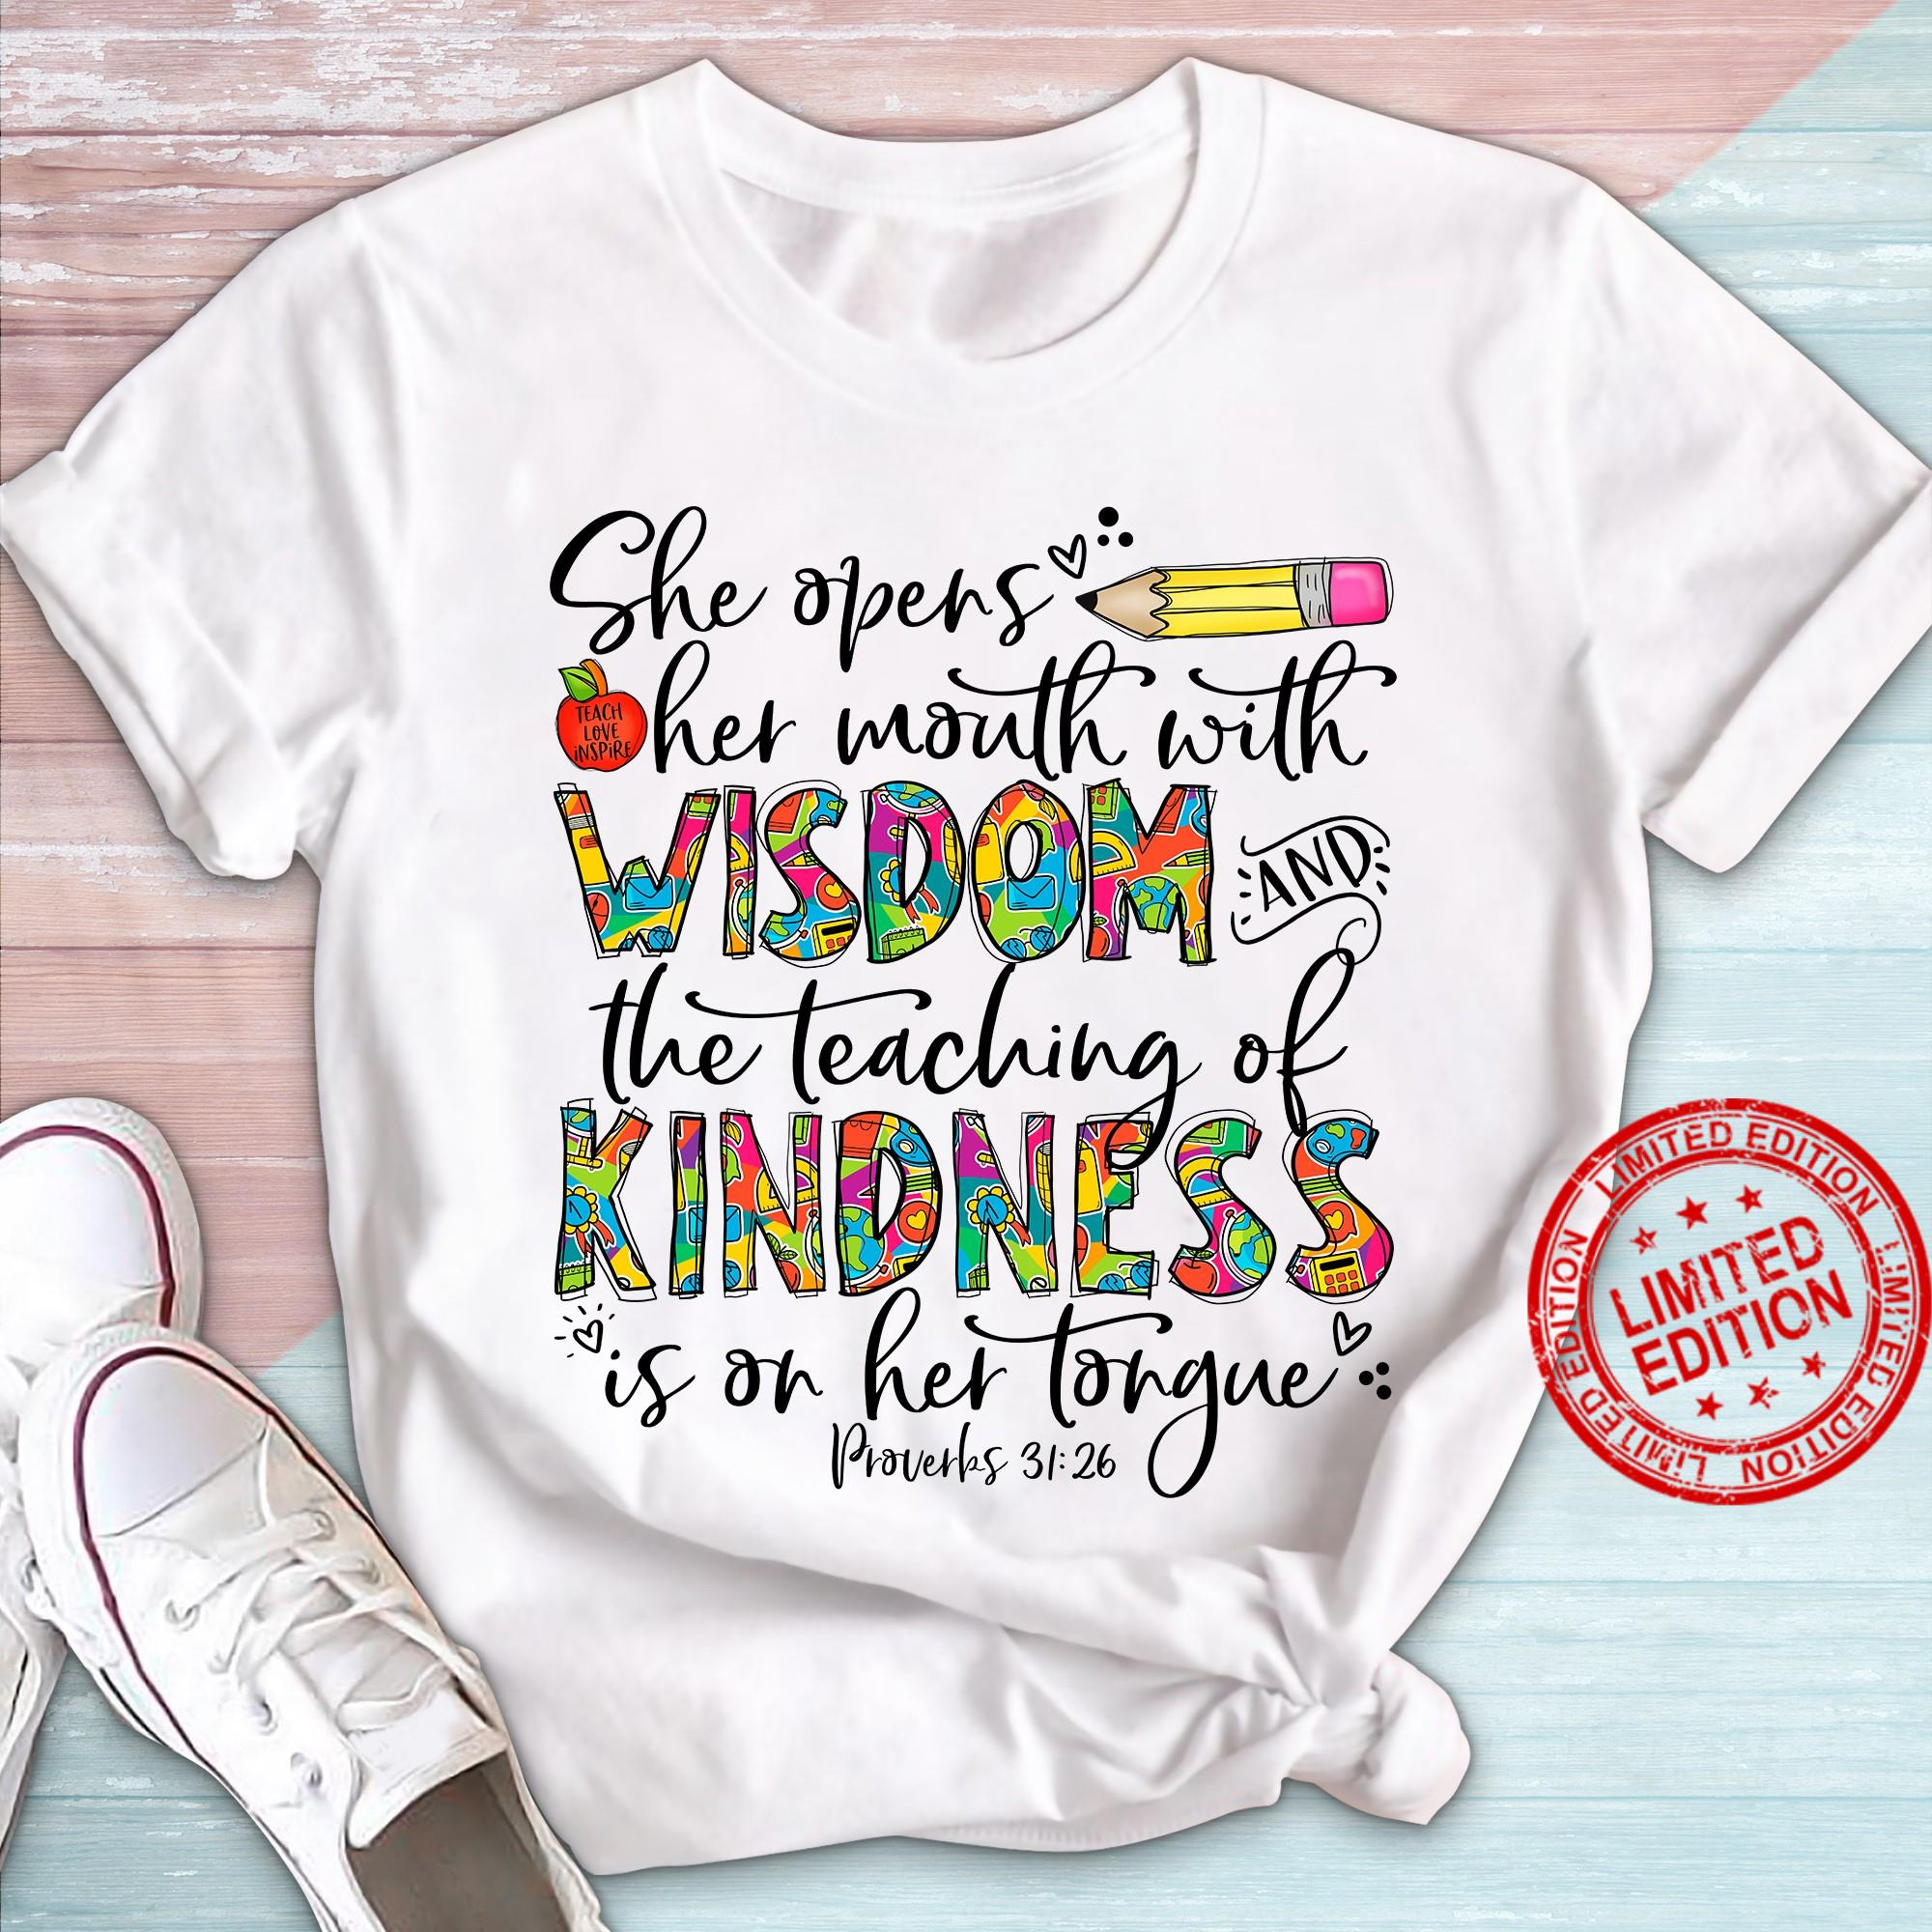 She Opens Her Mouth With Wisdom The Teaching Of Kindness Is On Her Tongue Shirt